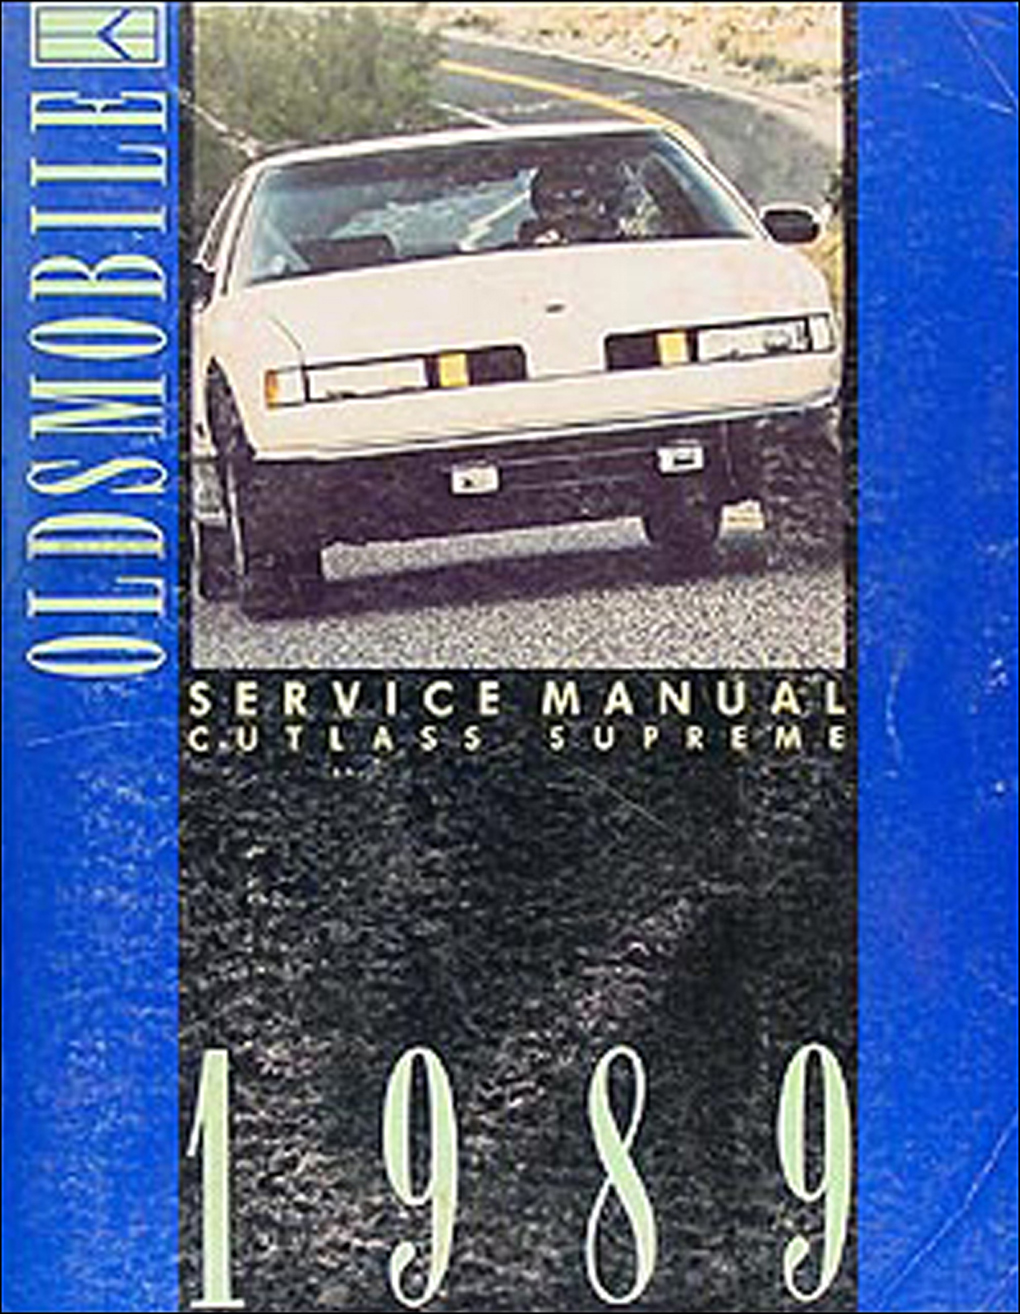 1989 Oldsmobile Cutlass Supreme Repair Manual Original